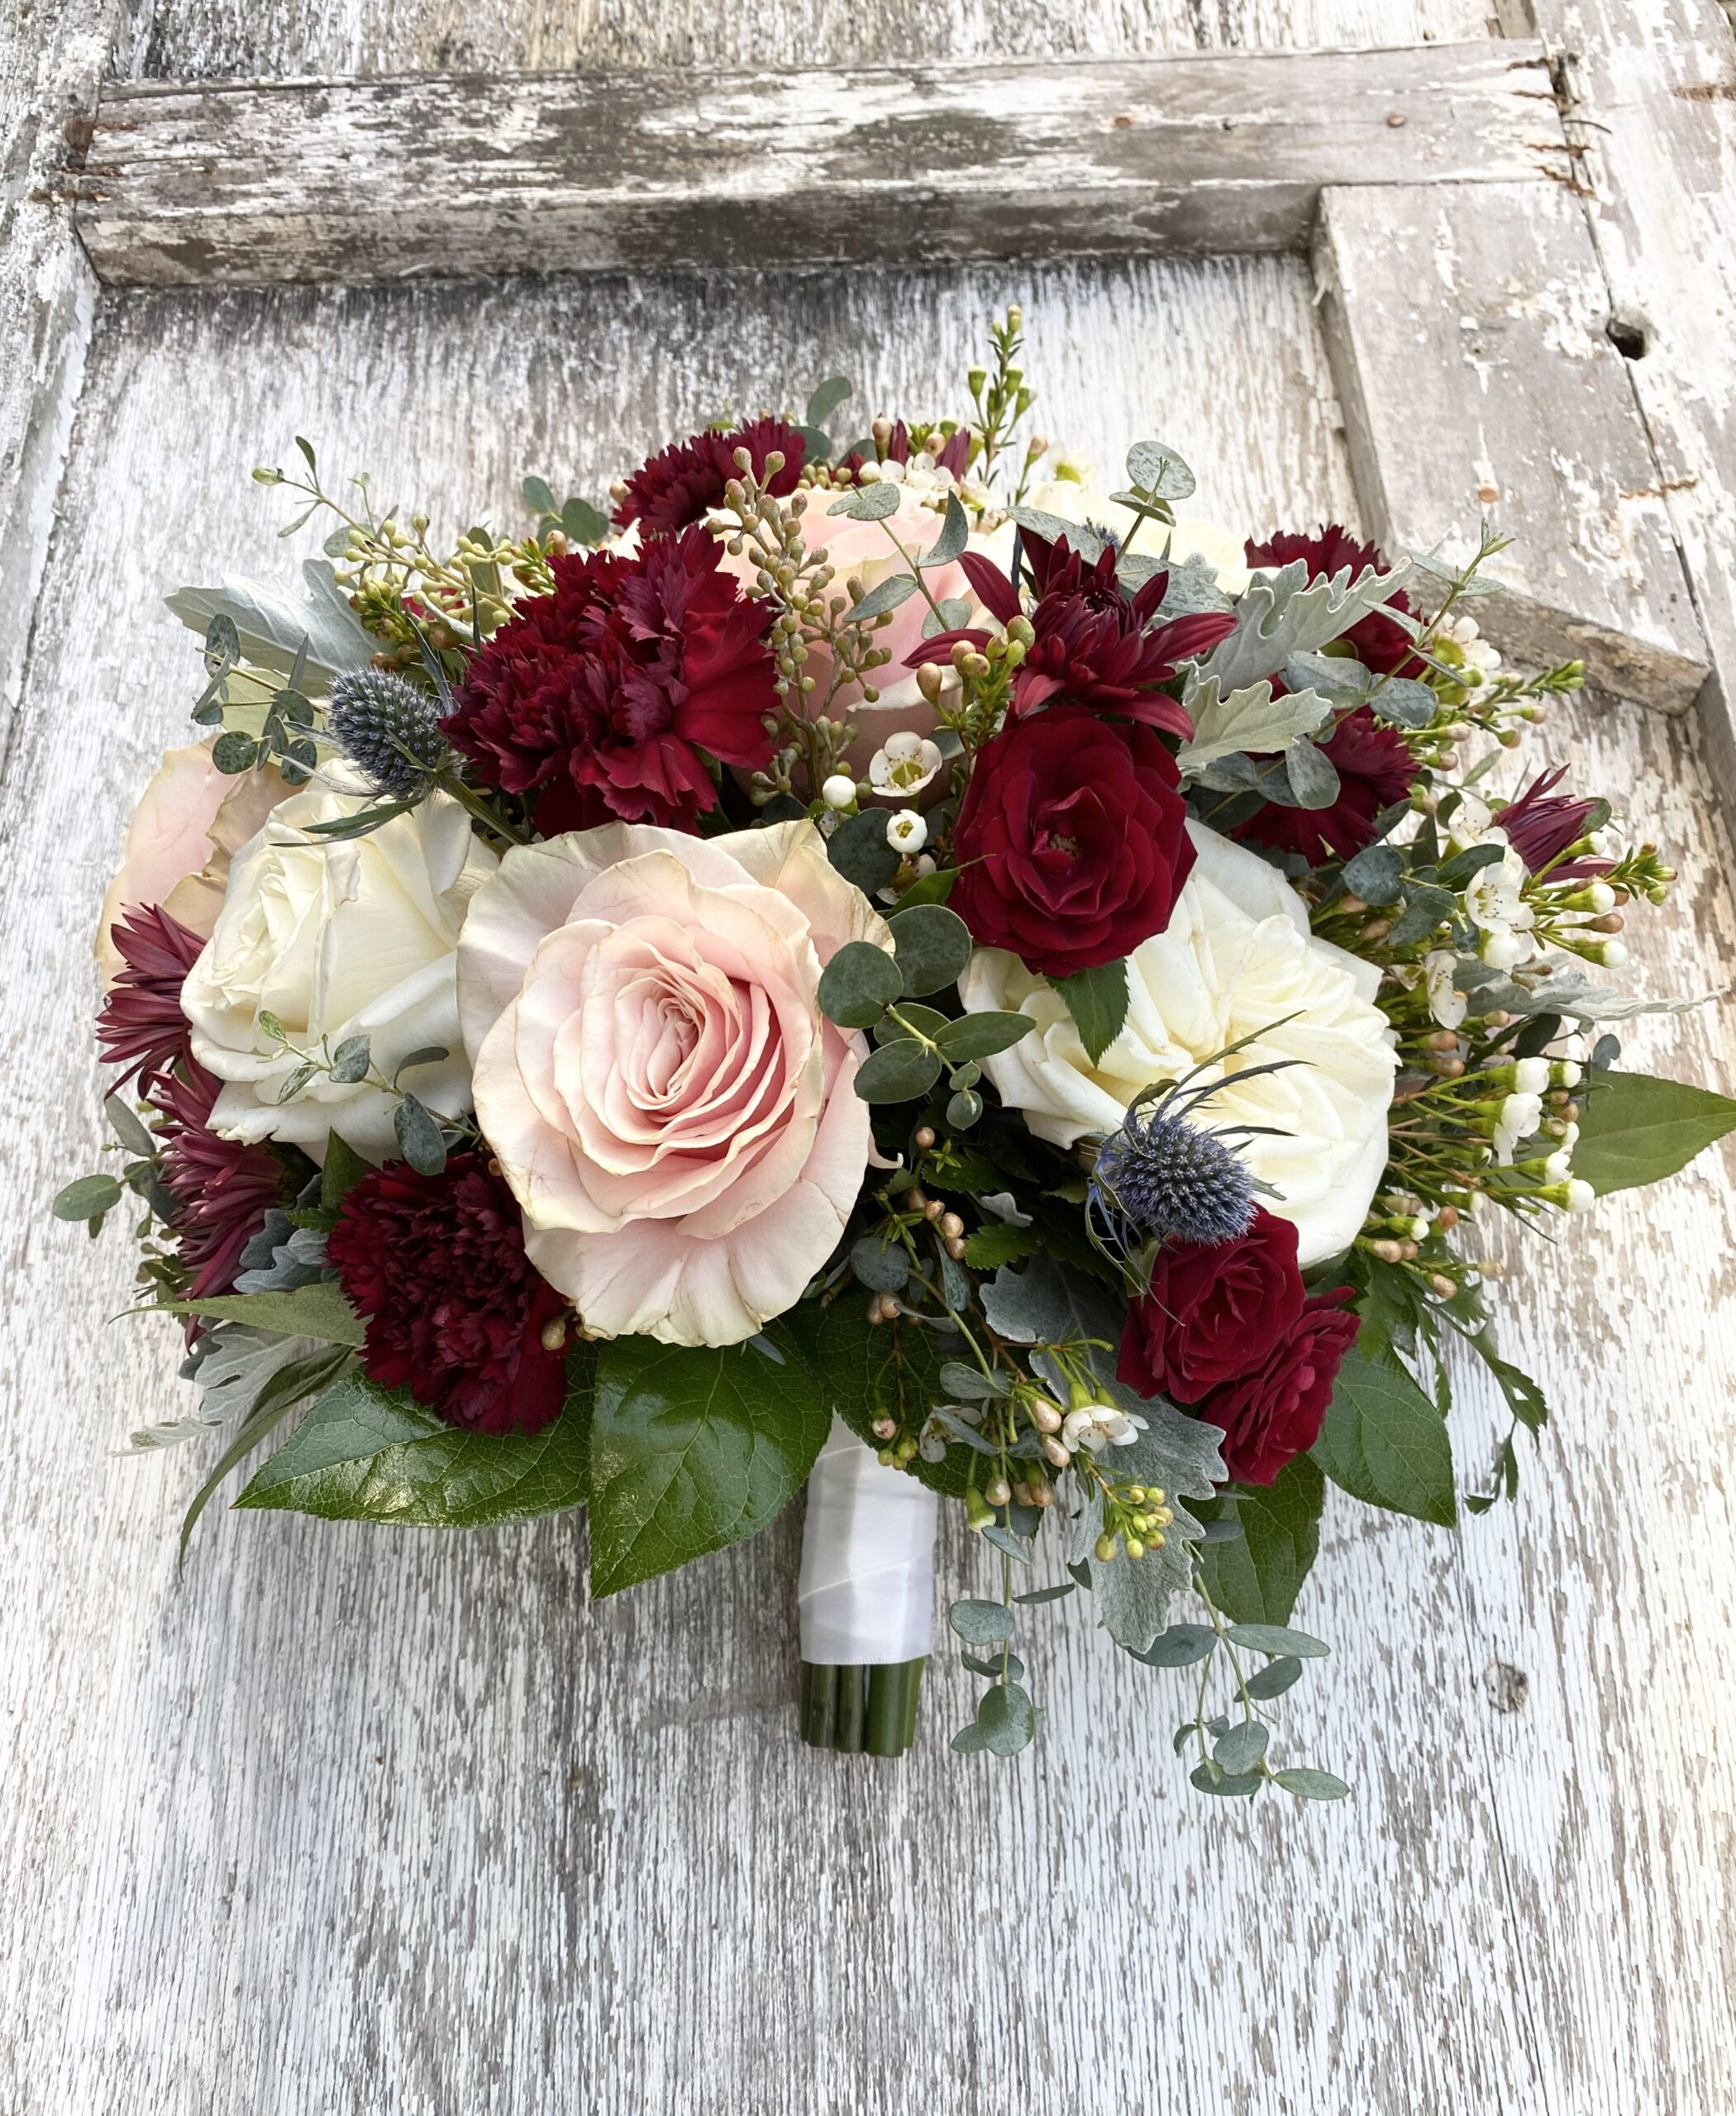 choose greenhouse wedding bouquets for your wedding 4 scaled - Choose Greenhouse Wedding Bouquets for Your Wedding